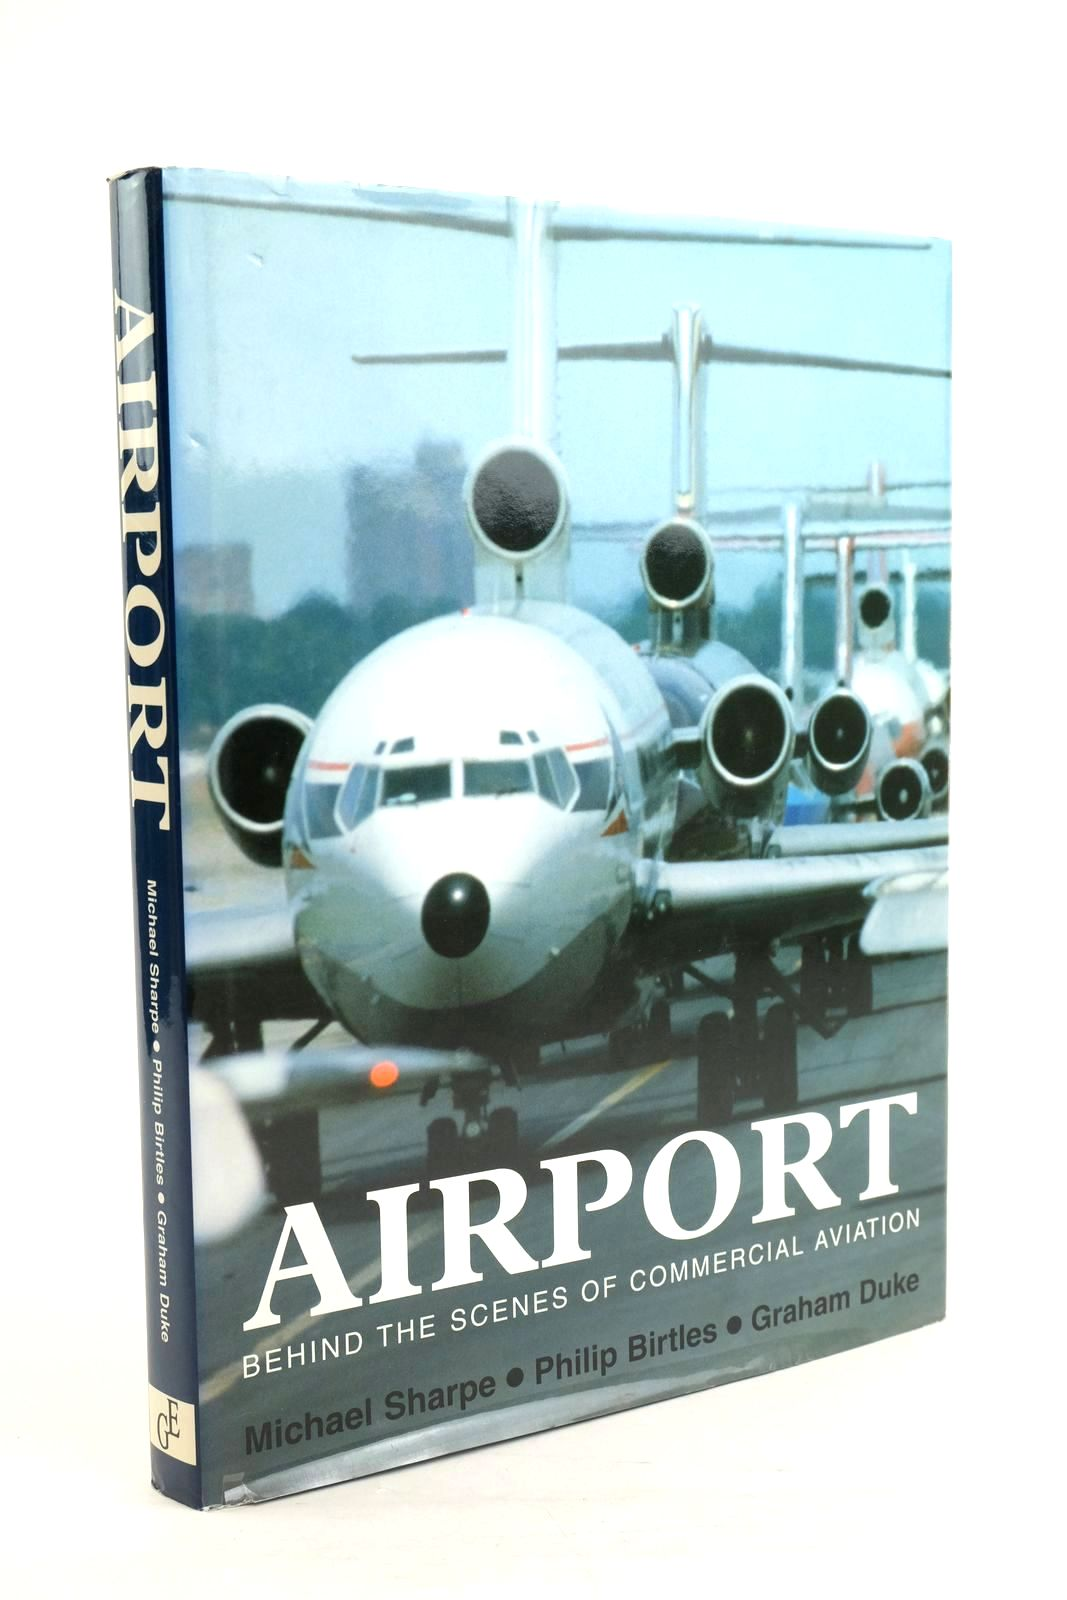 Photo of AIRPORT written by Sharpe, Michael Birtles, Philip Duke, Graham published by PRC Publishing (STOCK CODE: 1320140)  for sale by Stella & Rose's Books